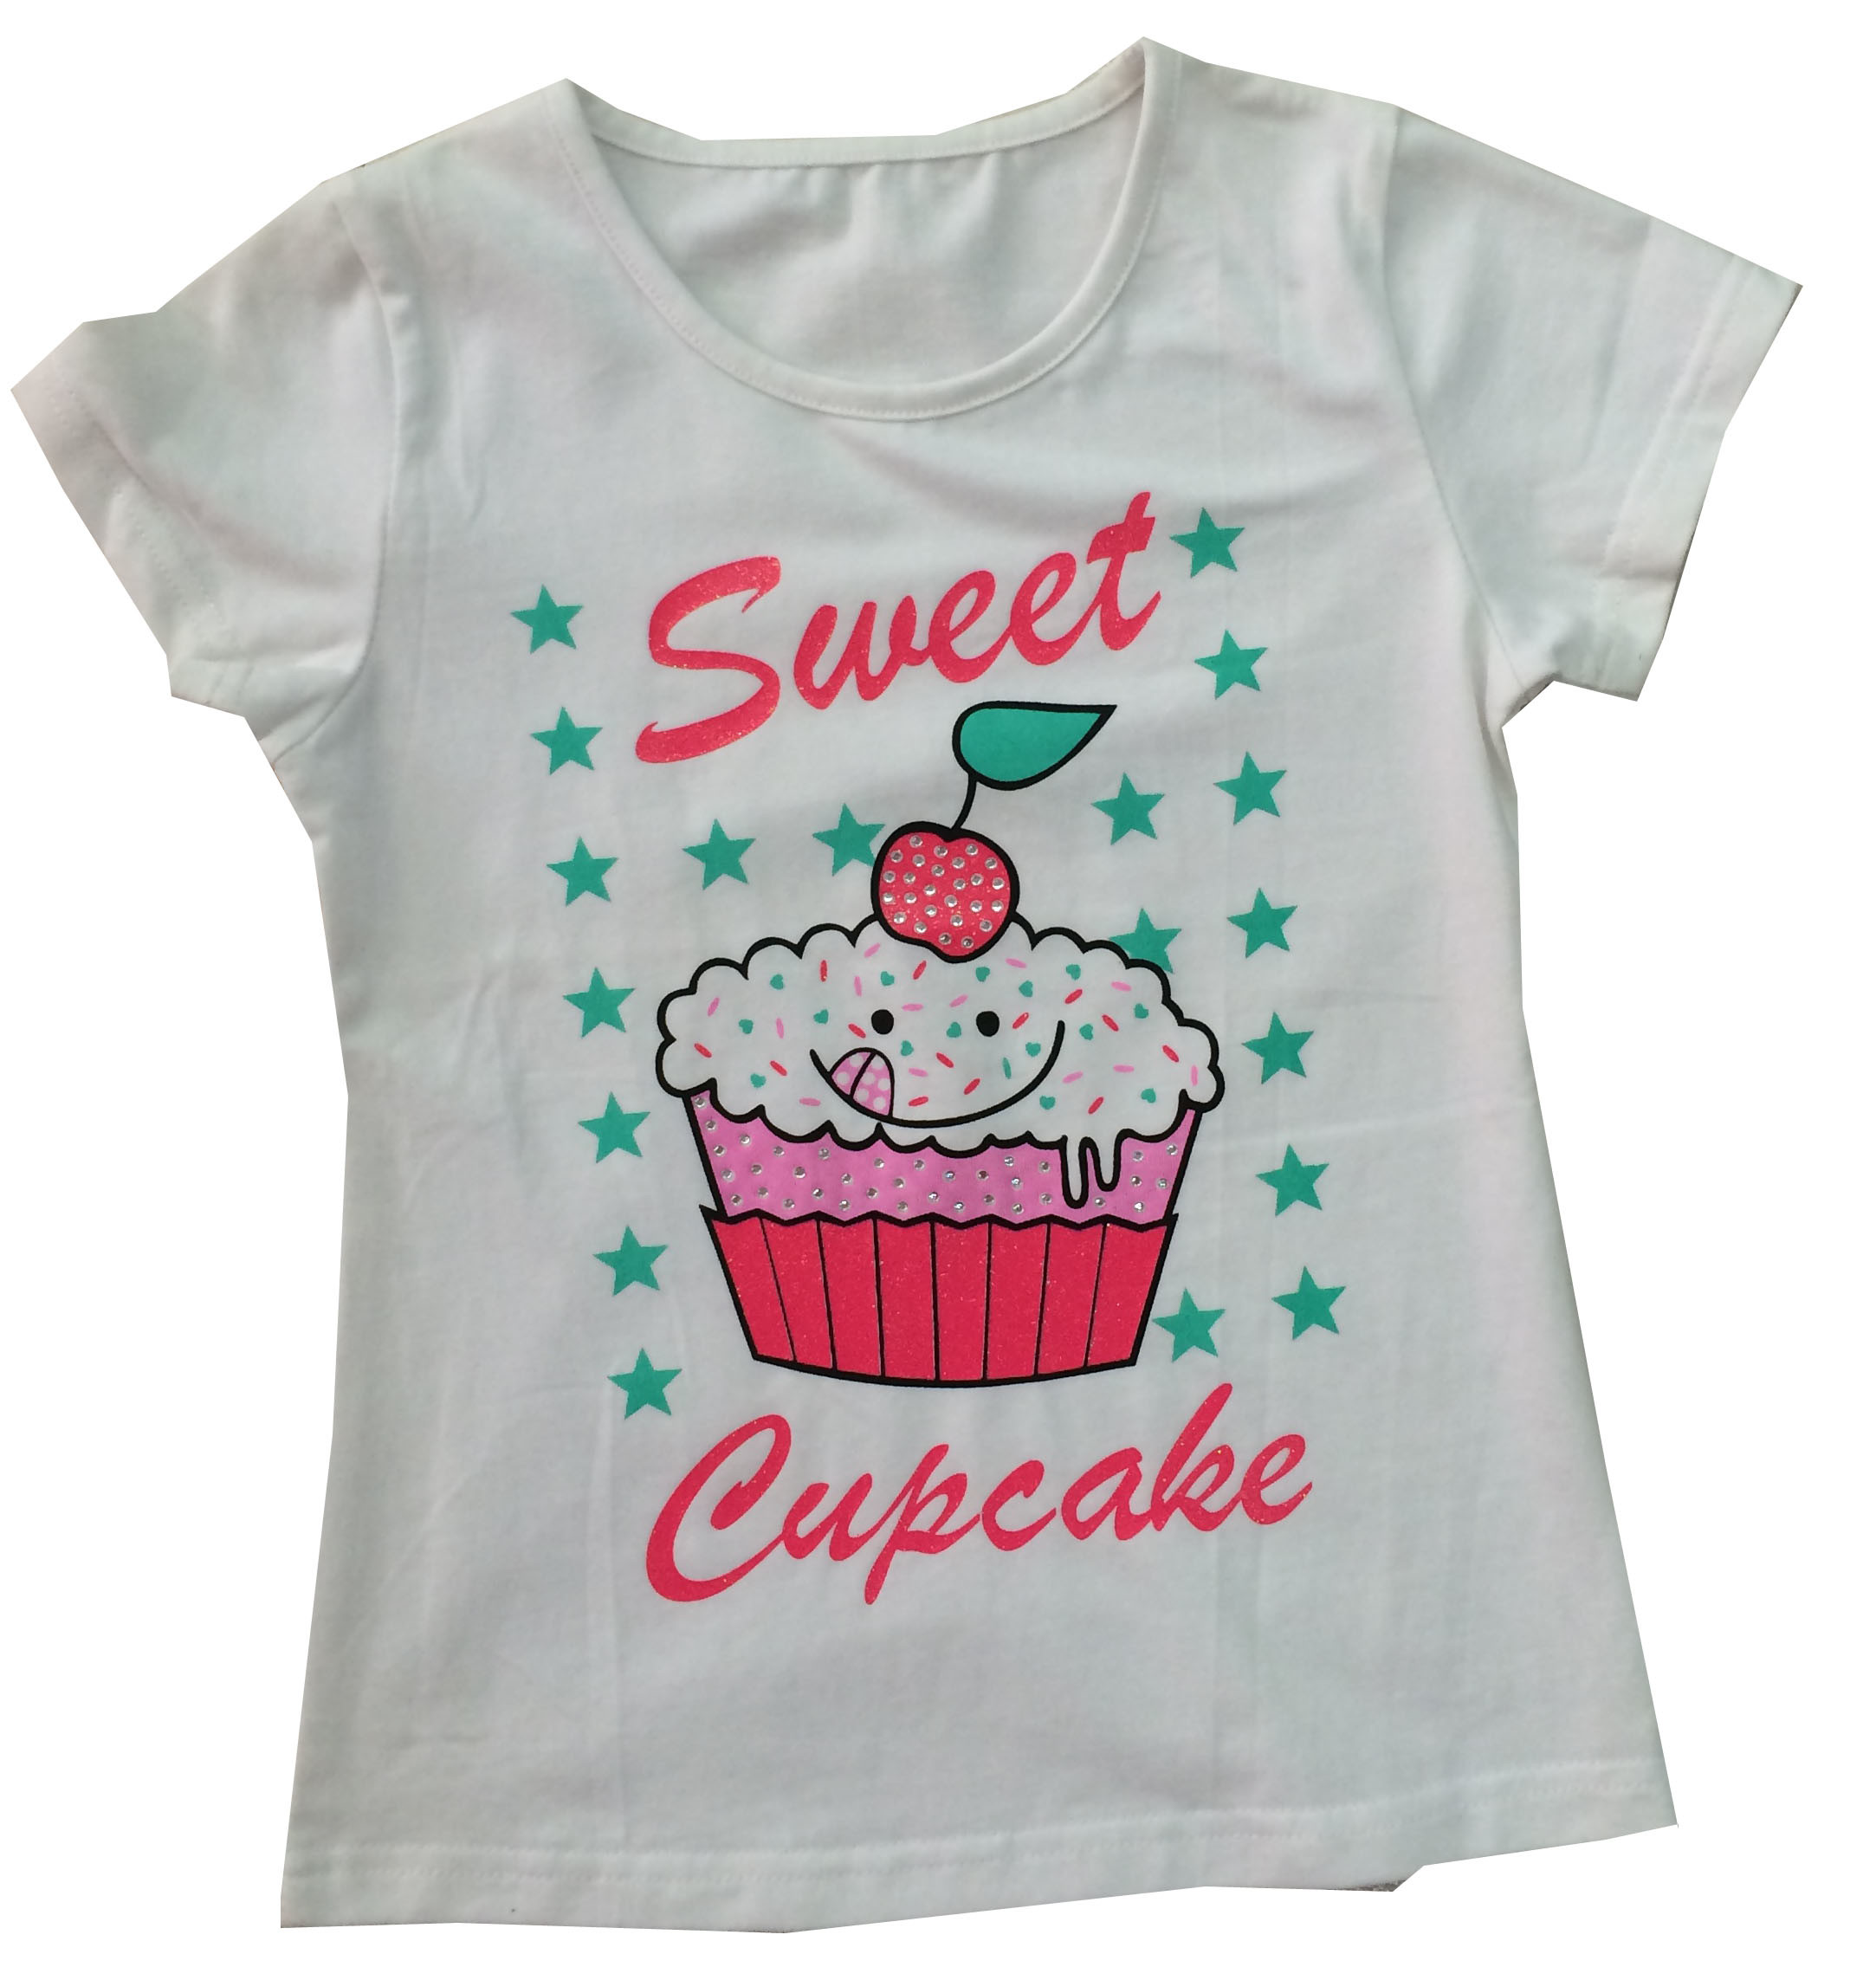 Kids shirt design images galleries Girl t shirts design